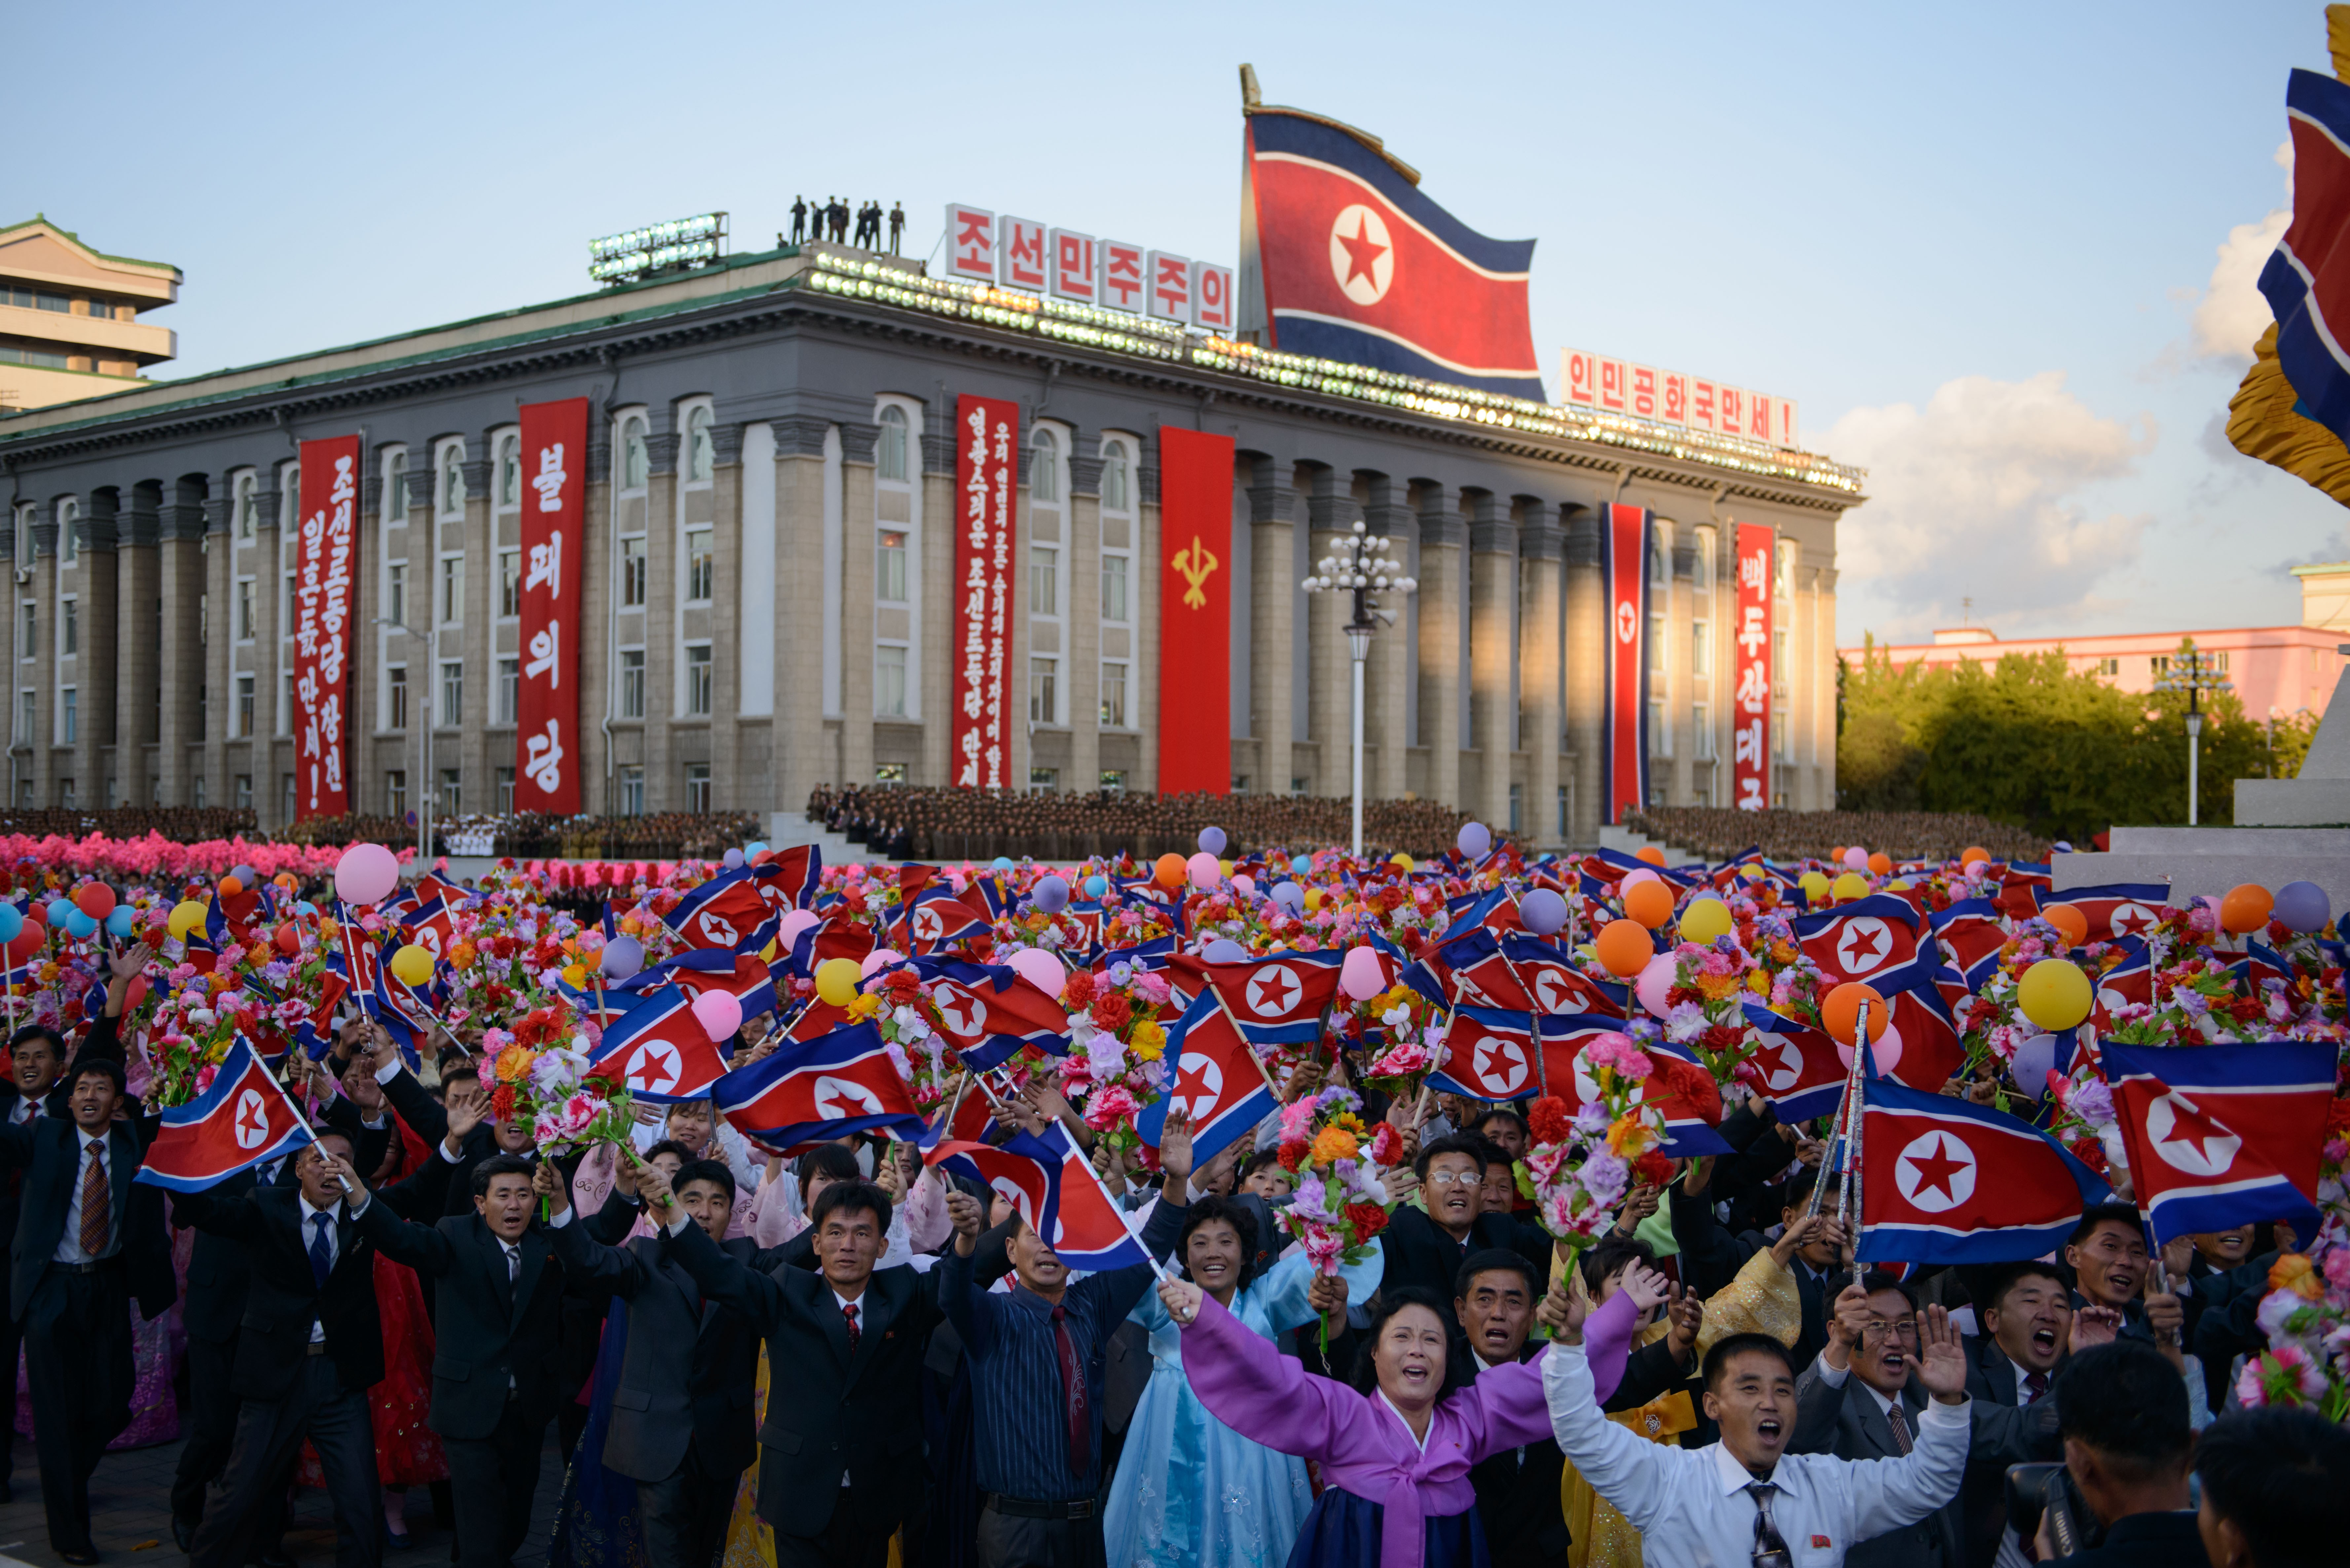 Participants wave flowers towards North Korean leader Kim Jong-Un (not pictured) as they pass through Kim Il-Sung square during a mass military parade in Pyongyang, on Oct. 10, 2015